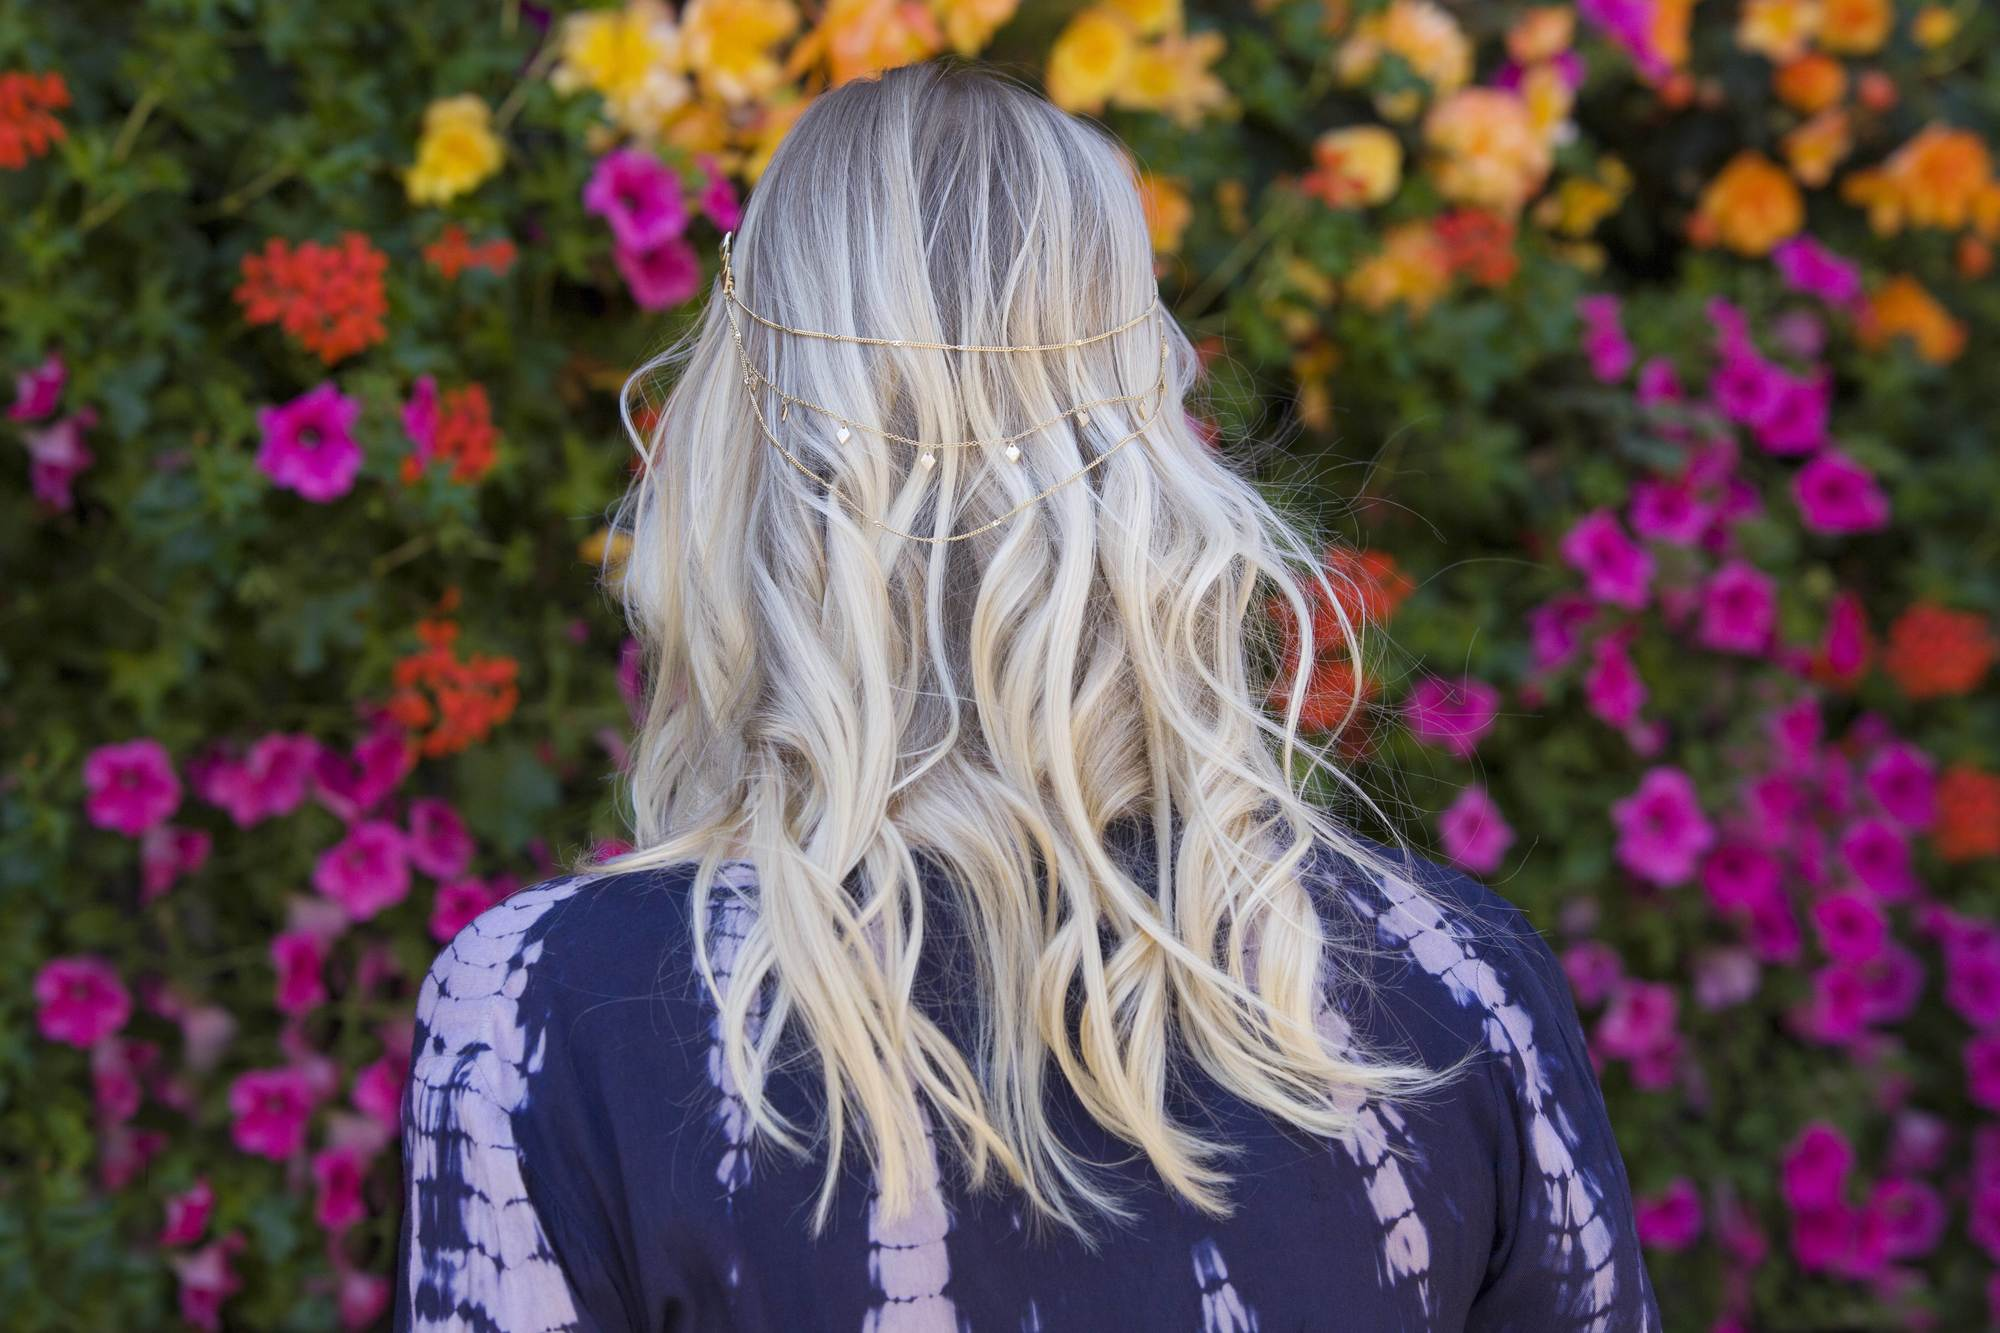 ash blonde: back of a woman's head with blonde wavy highlighted hair, complete with a festival hair accessory